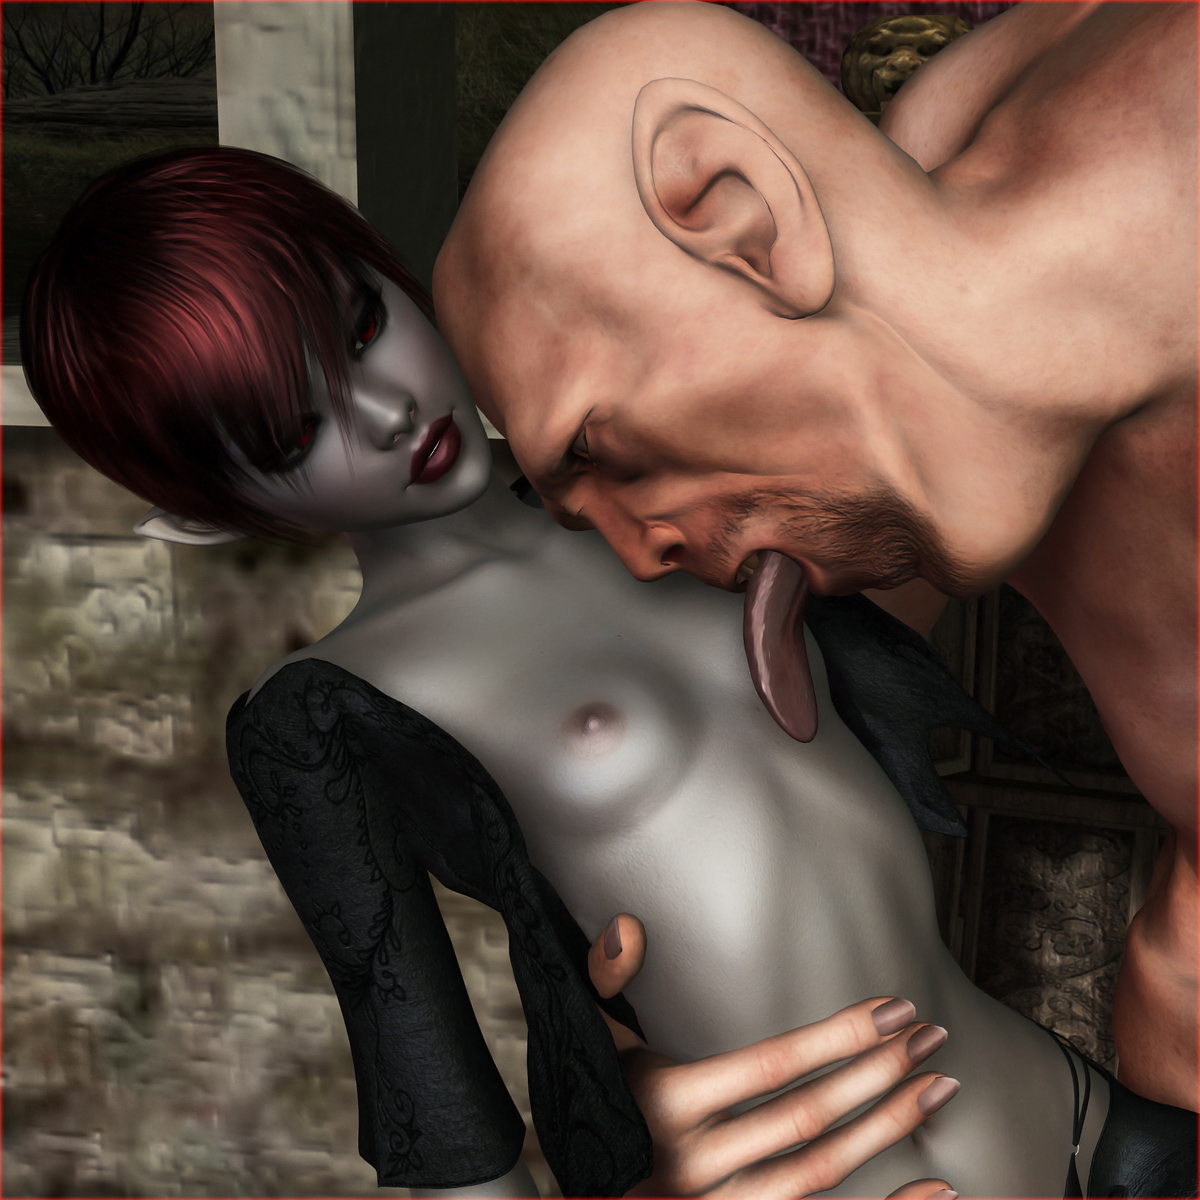 Free 3d cg porn images of hot  exploited scene